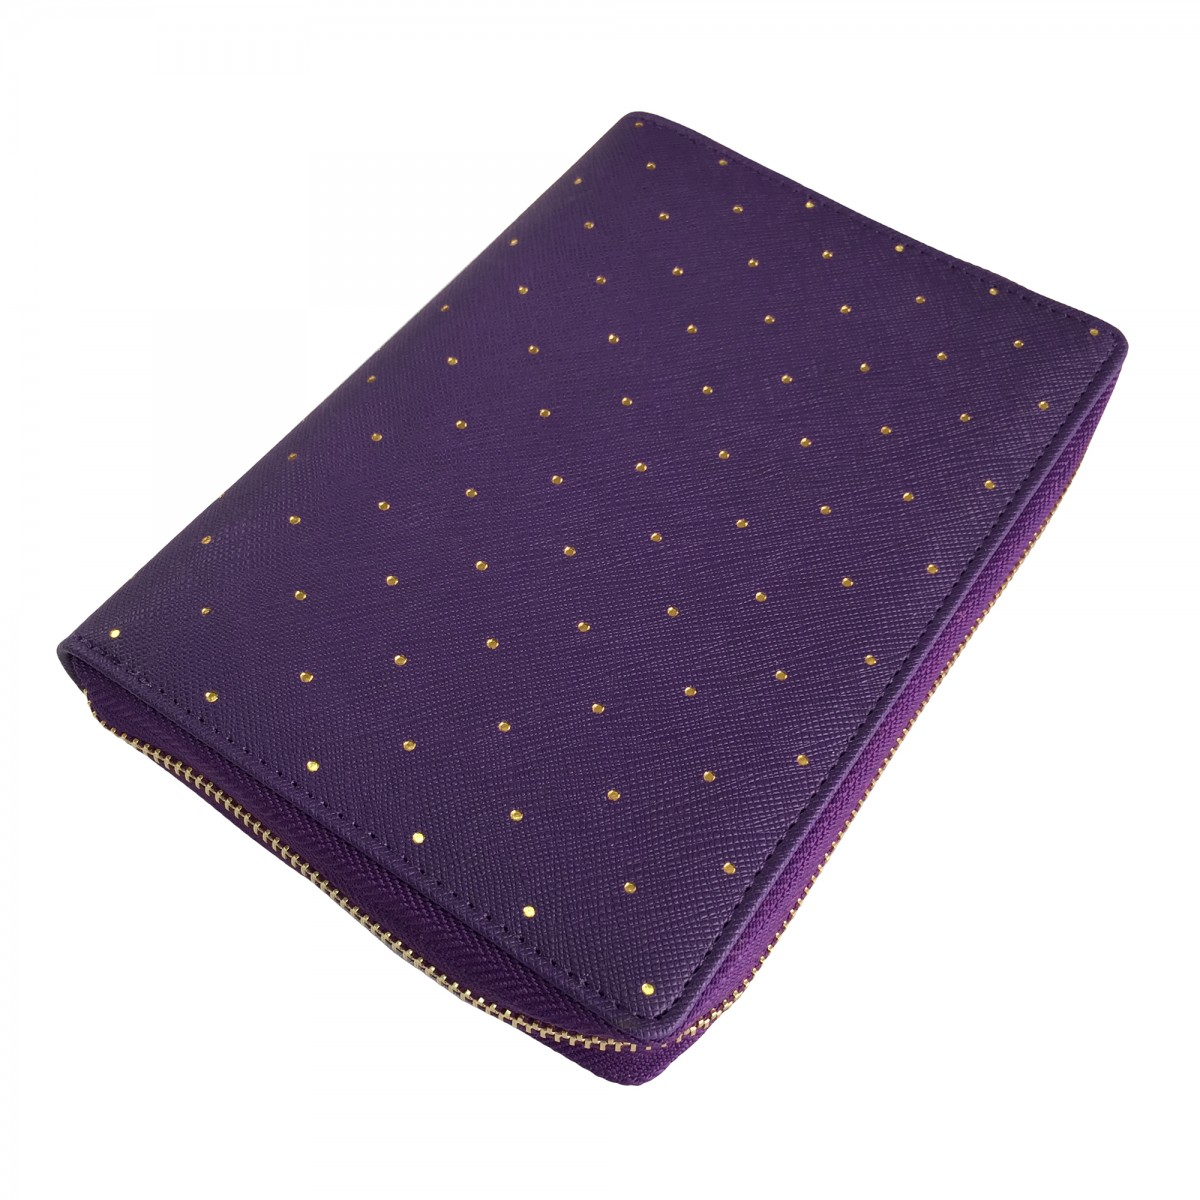 [Minor Flaw] DOKIBOOK ROYAL PURPLE ZIP SMALL